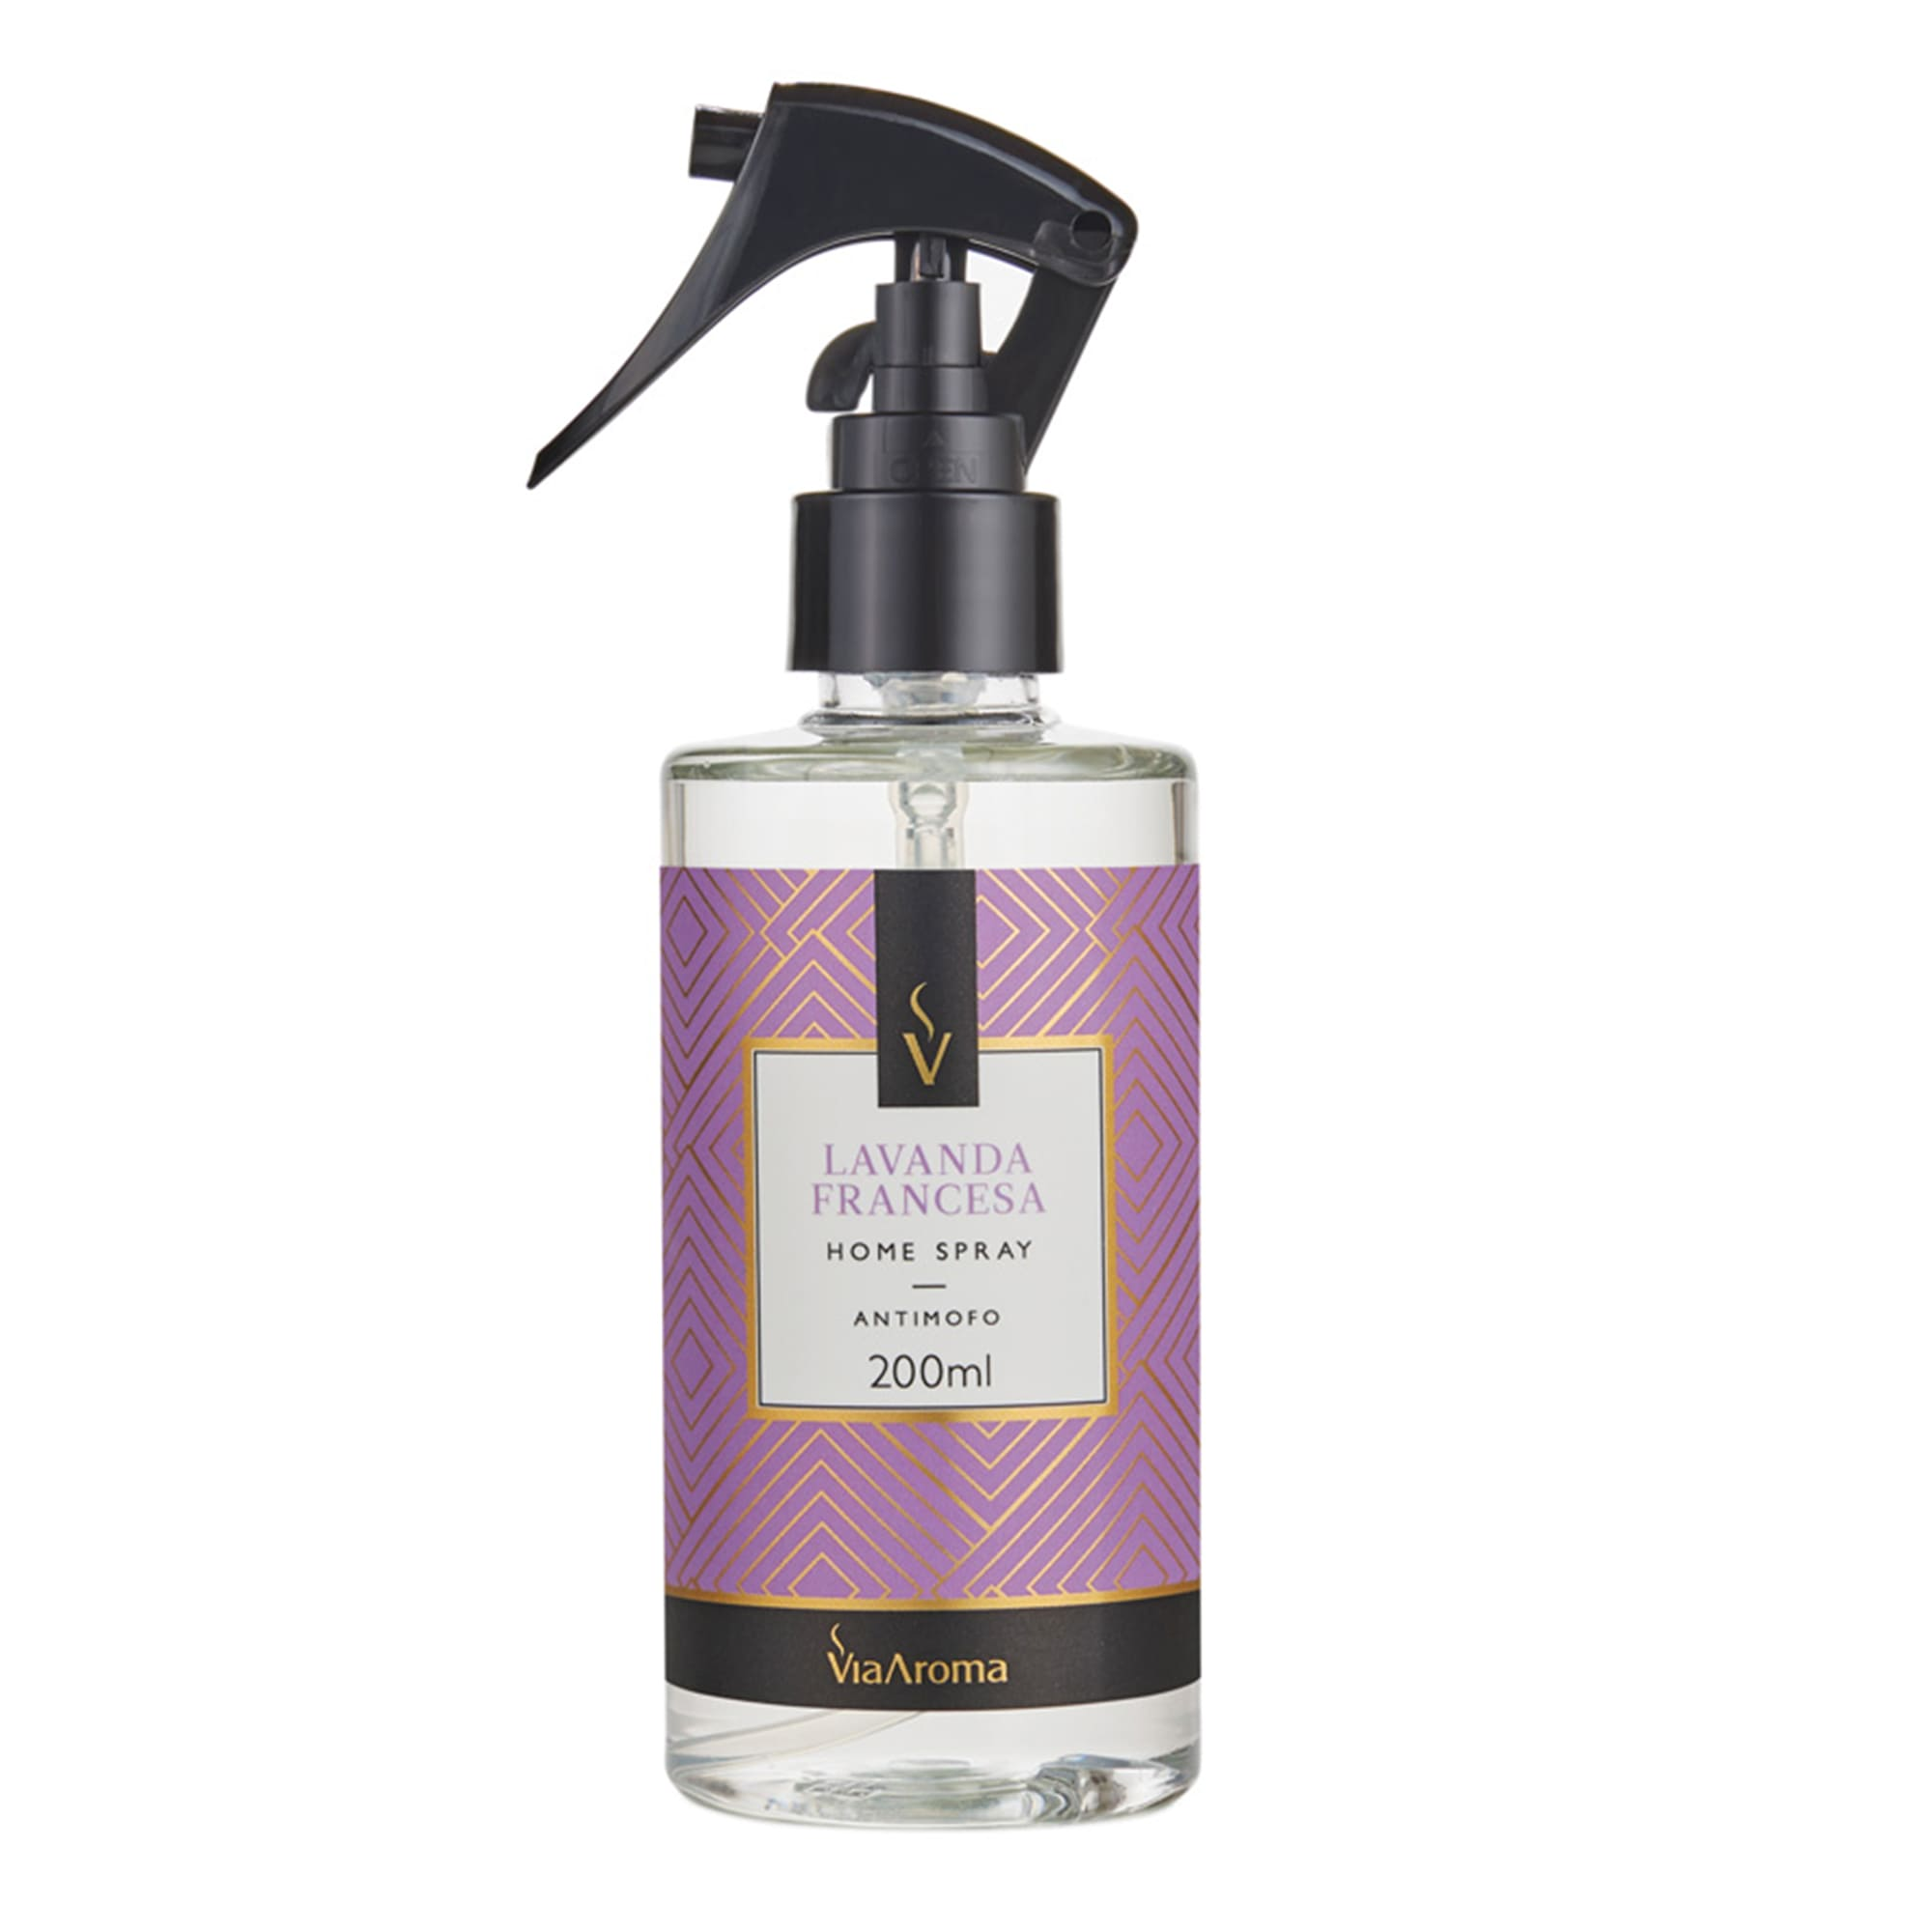 Home Spray 200ml - Lavanda Francesa